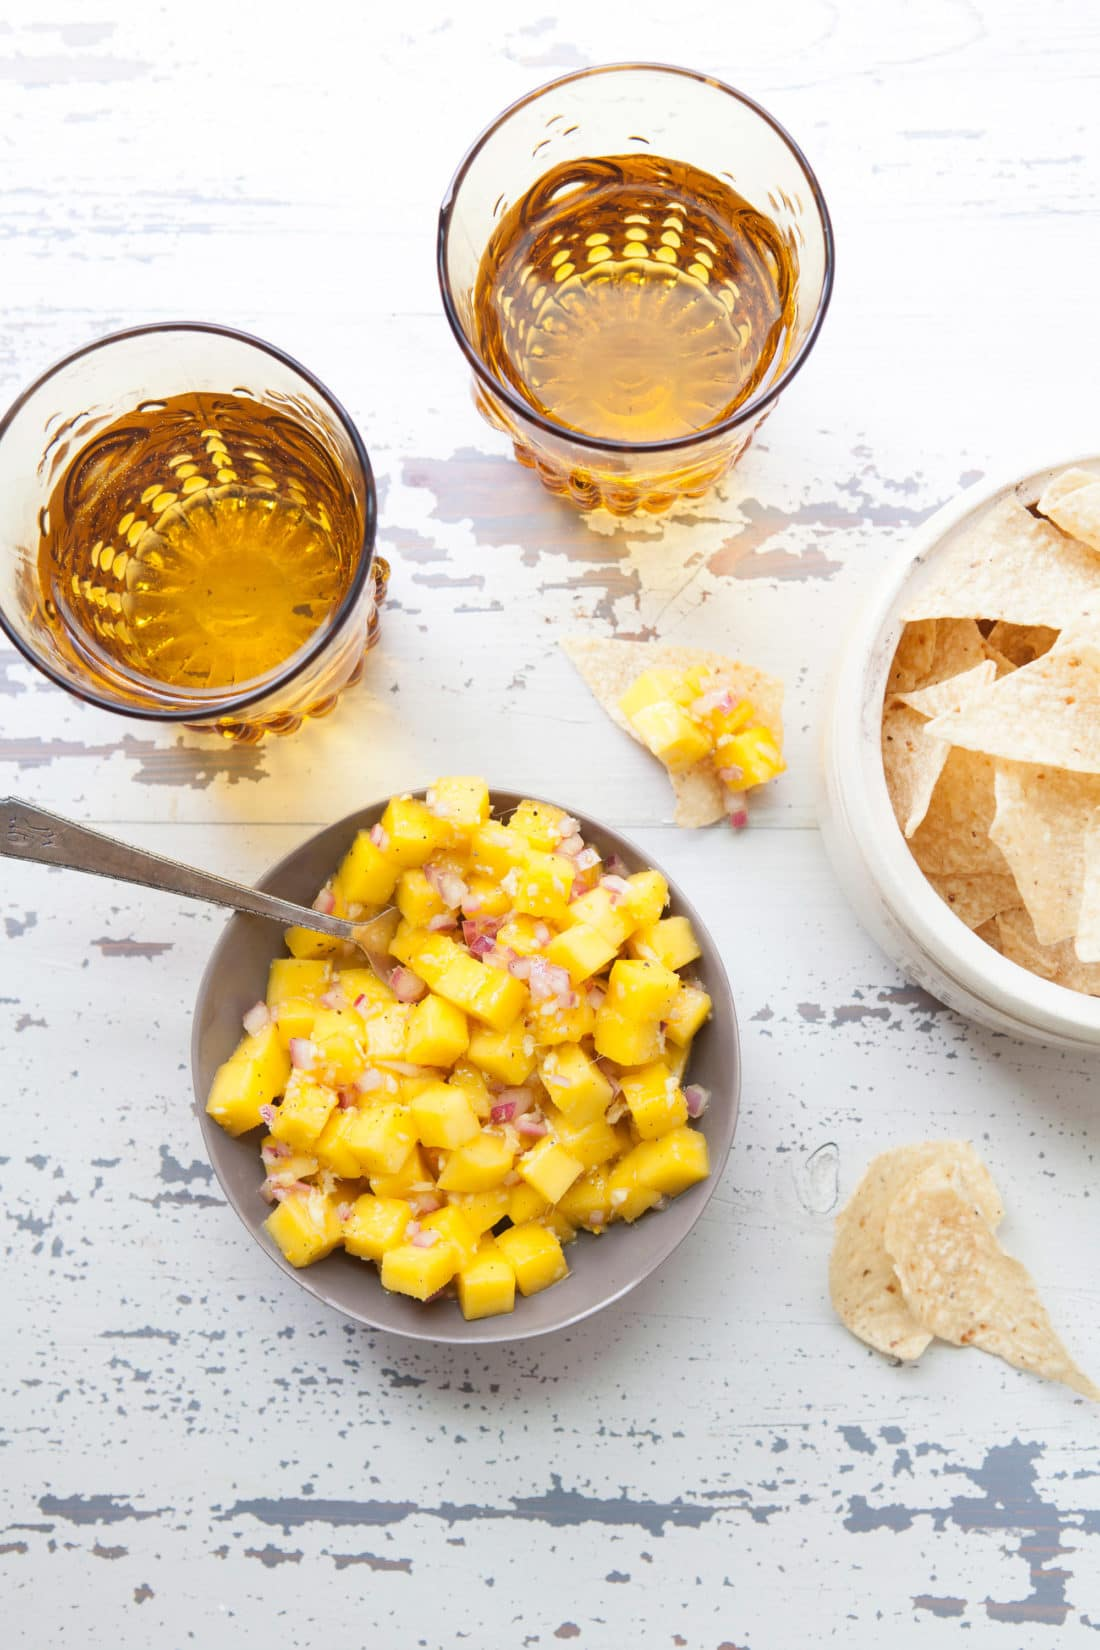 Citrusy Mango Ginger Salsa / Photo by Kerri Brewer / Katie Workman / themom100.com